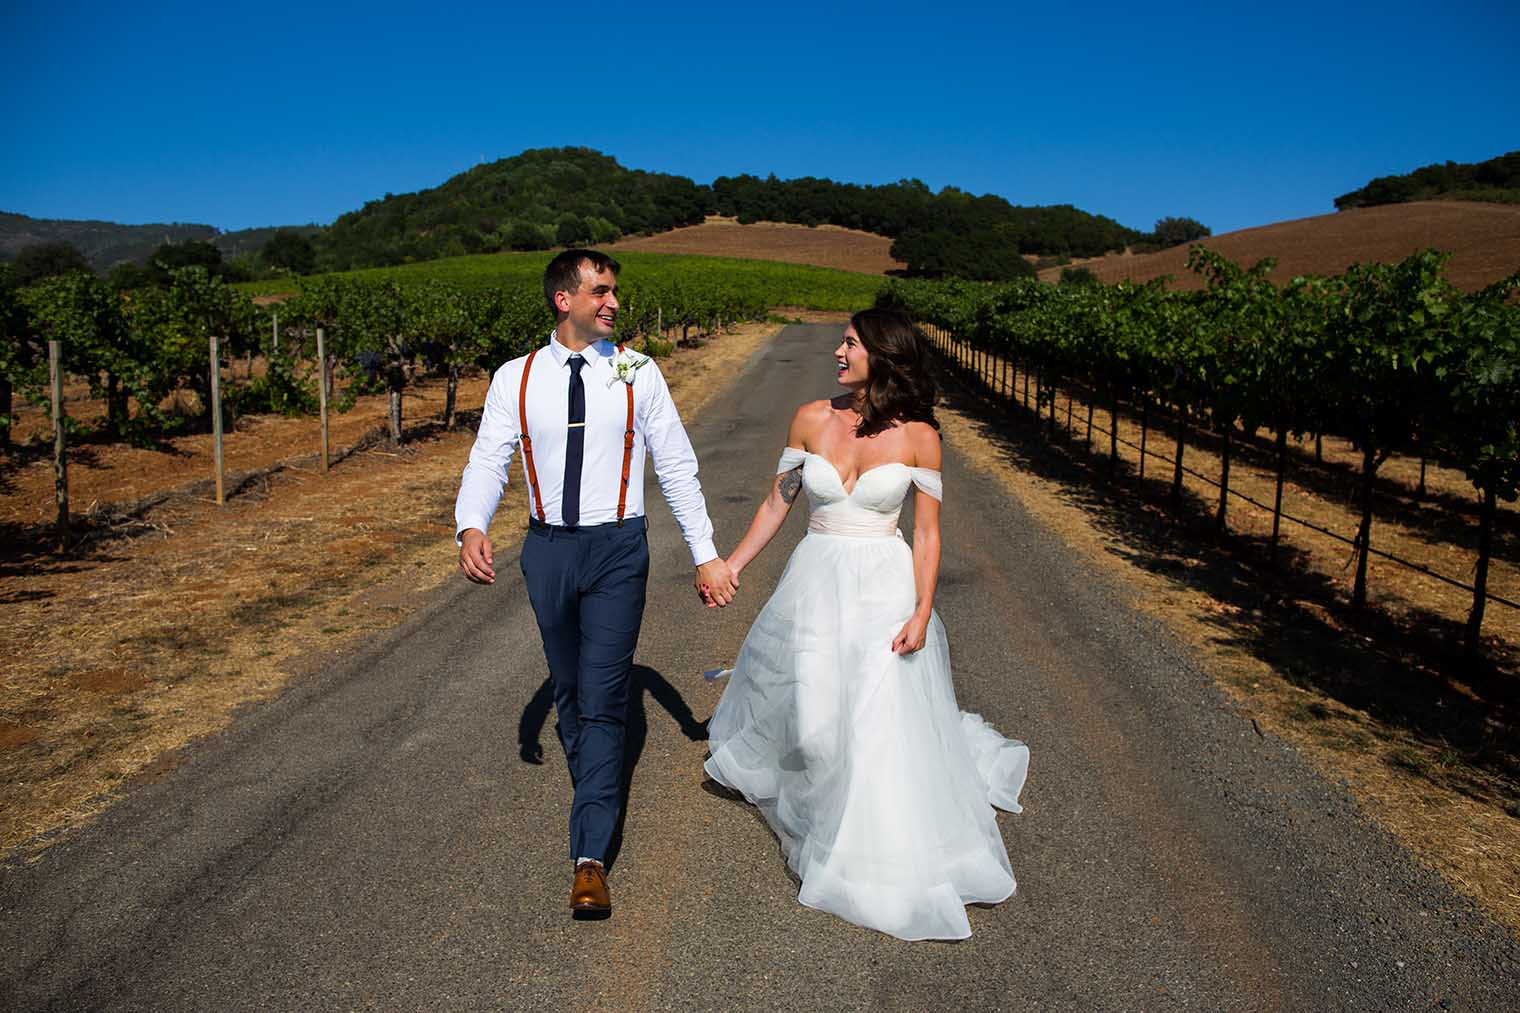 Bride and groom walking through winery